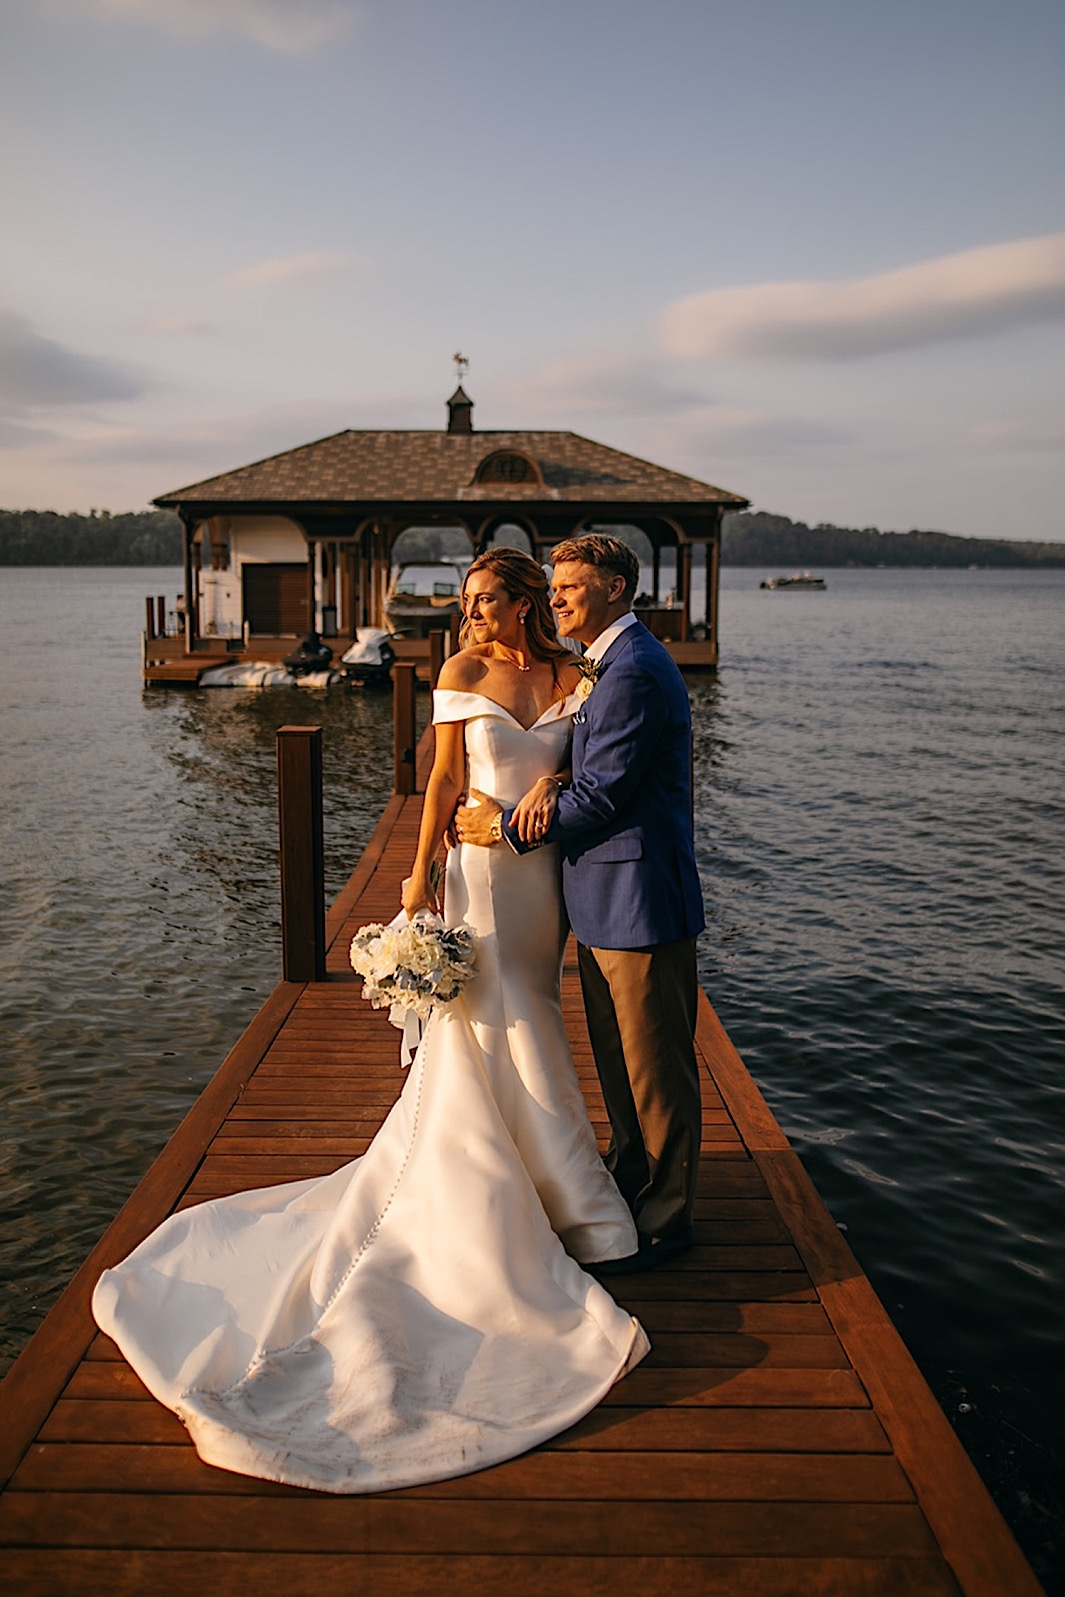 A bride and groom embrace and admire the sunset on a dock on a lake.